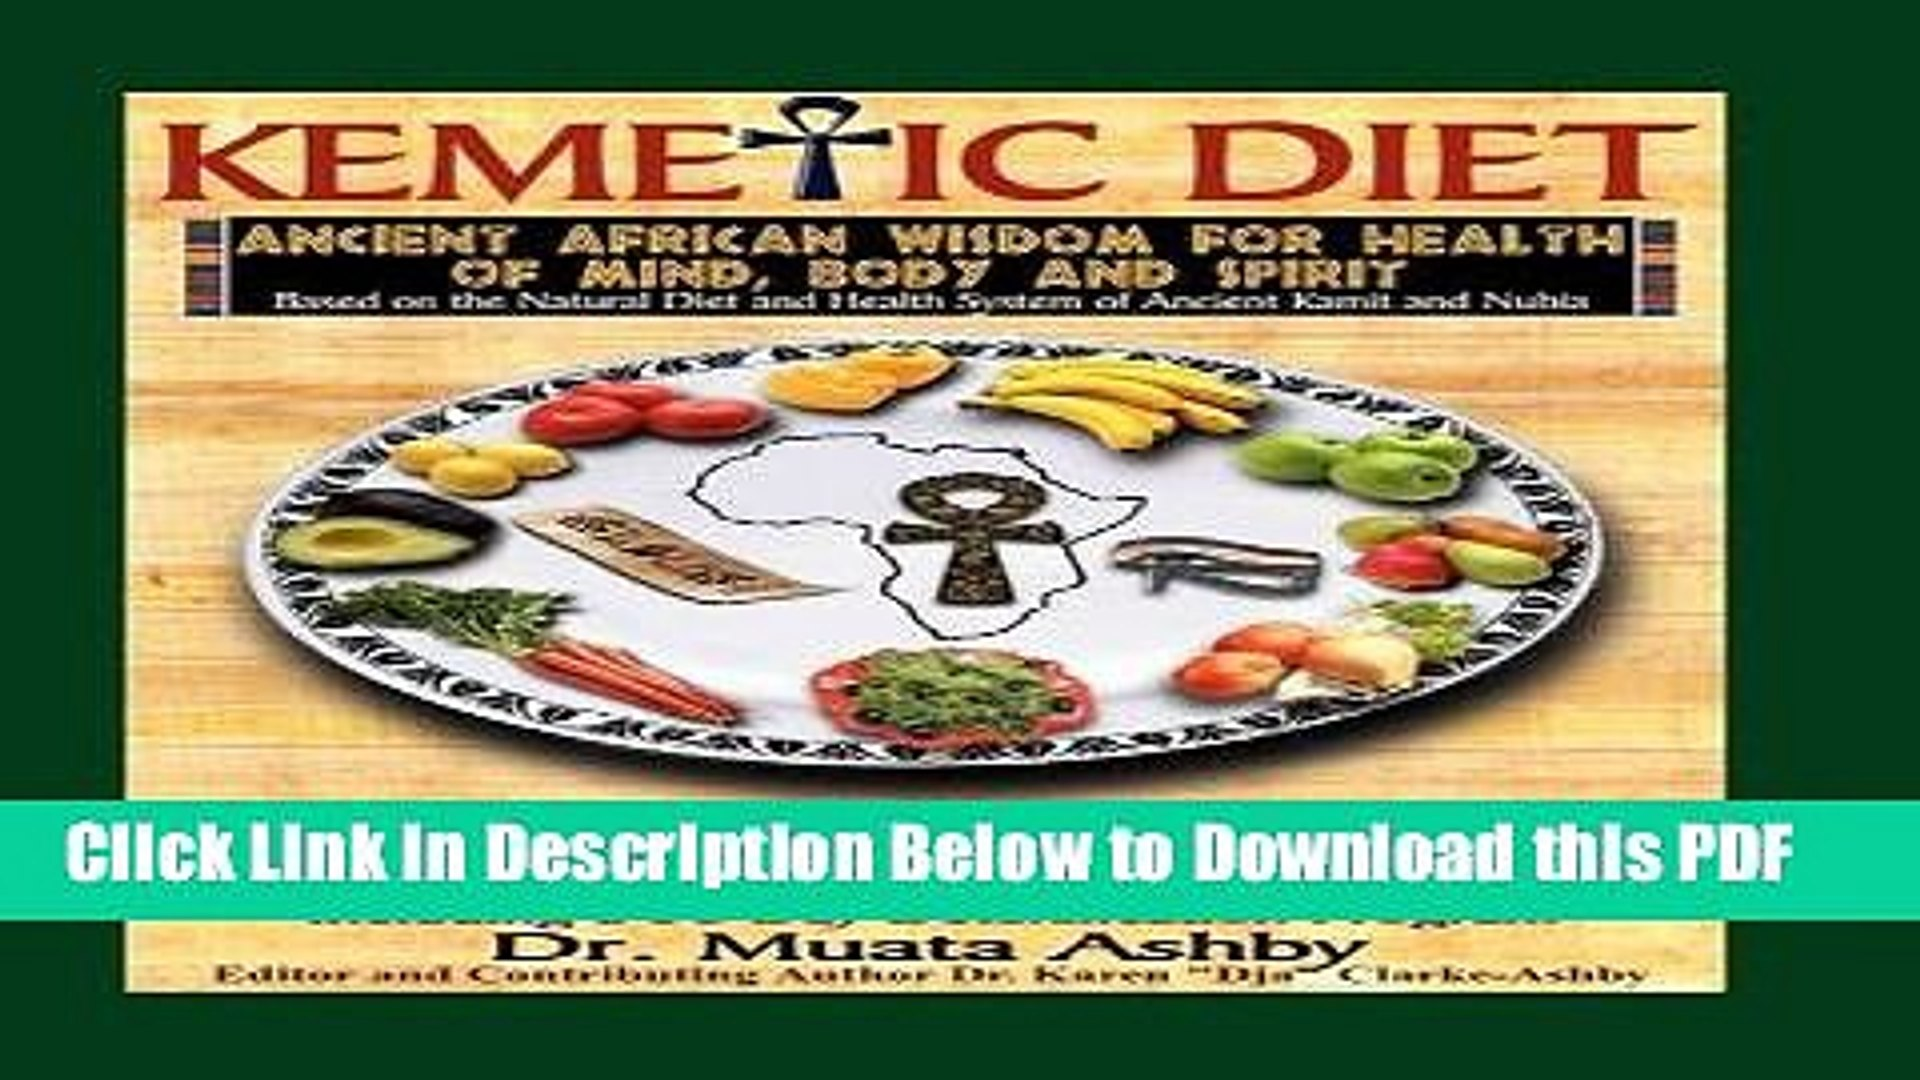 [Read] The Kemetic Diet: Food For Body, Mind and Soul, A Holistic Health  Guide Based on Ancient